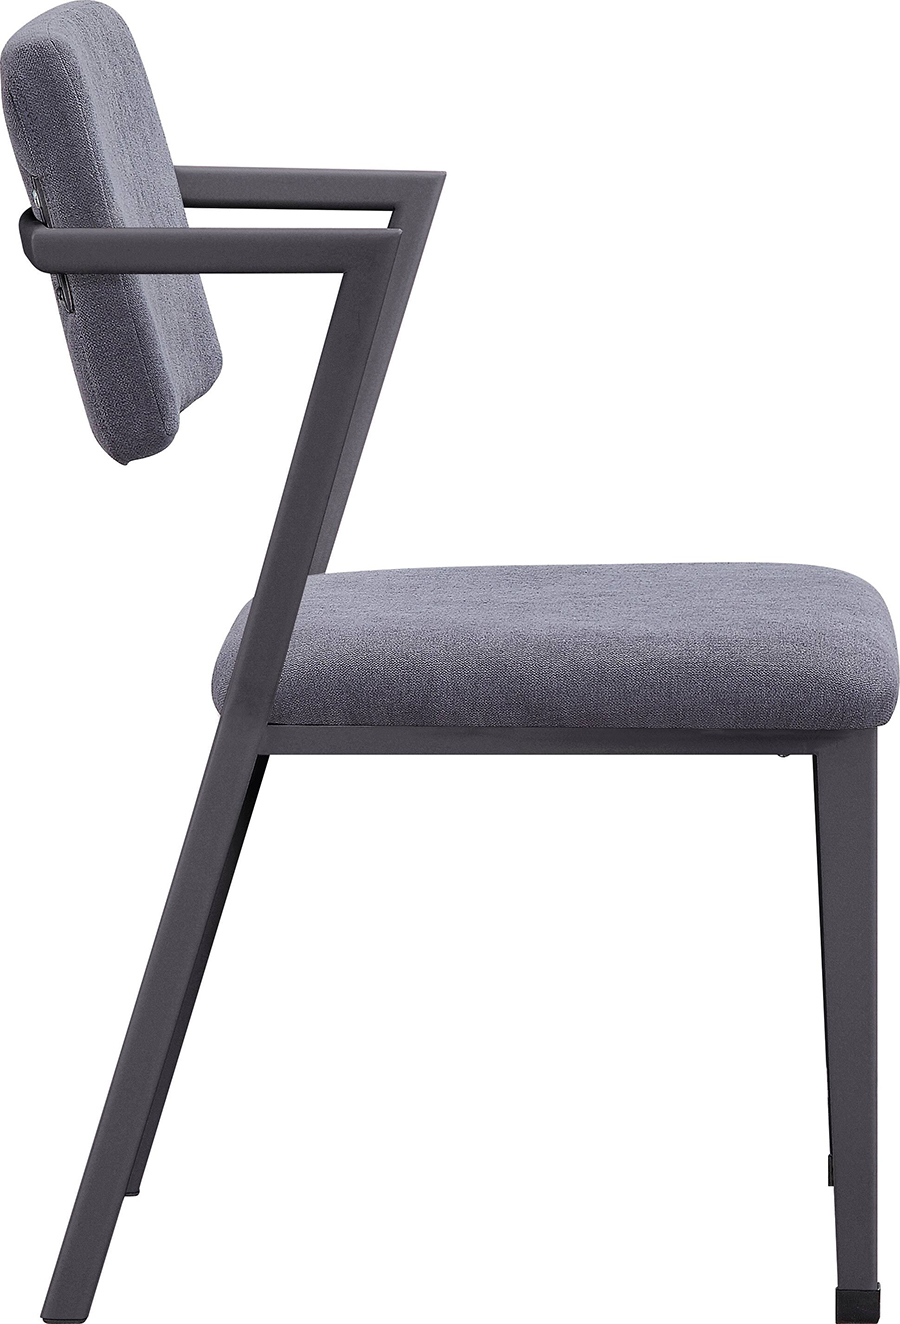 Gunmetal Arm Chair Side